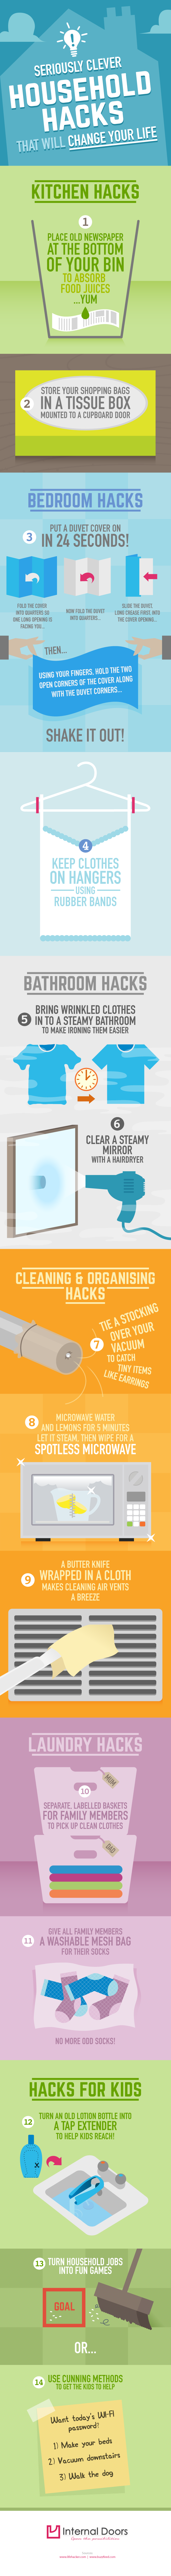 Clever Household Hacks #infographic